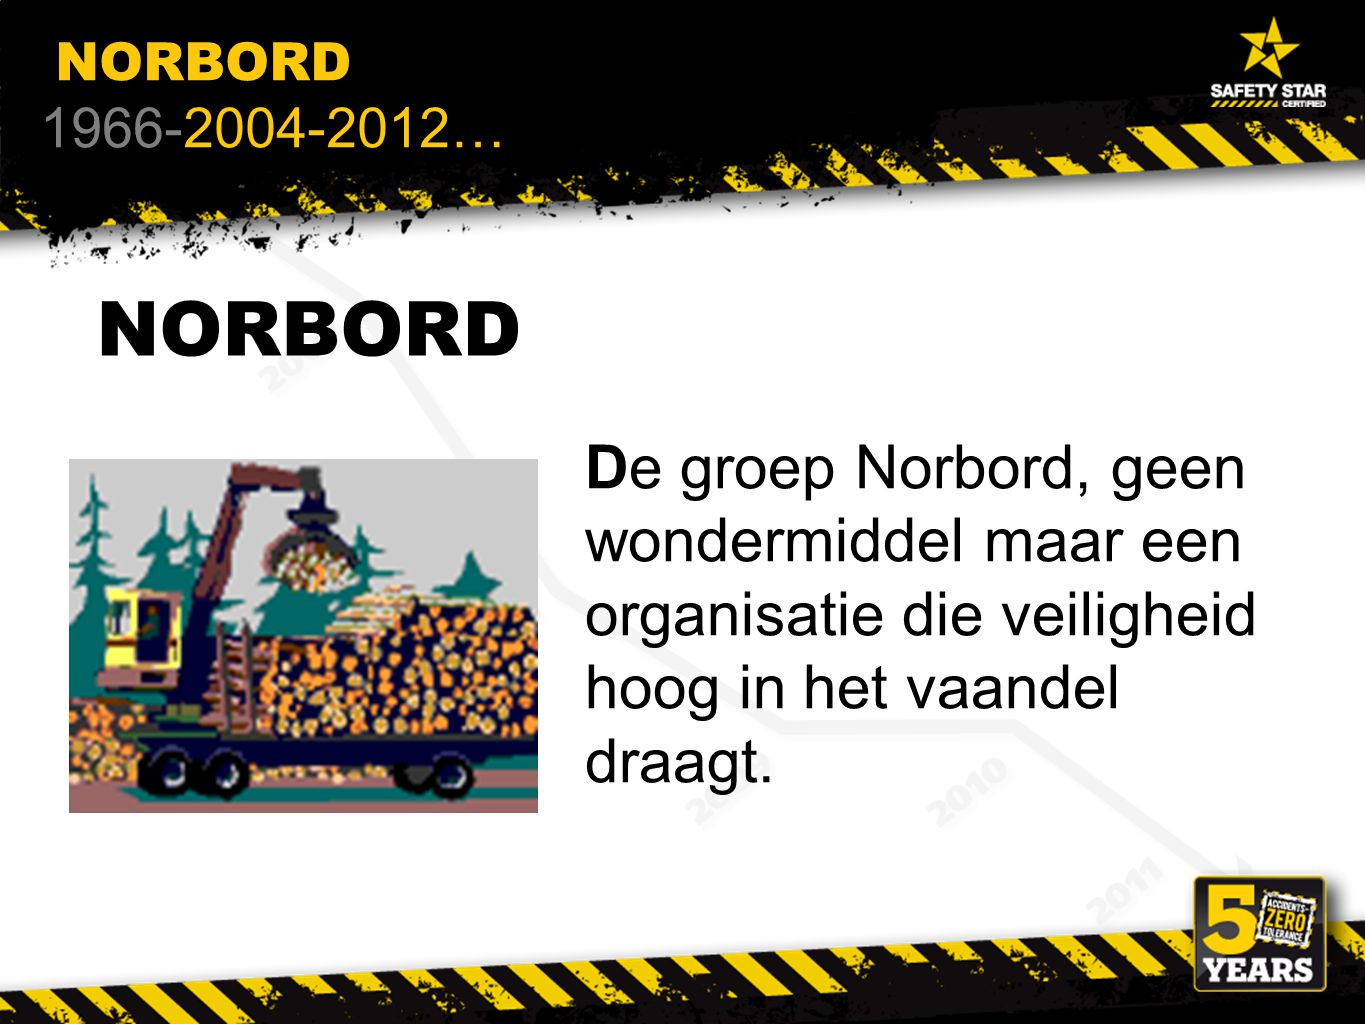 NORBORD 1966-2004-2012… NORBORD.